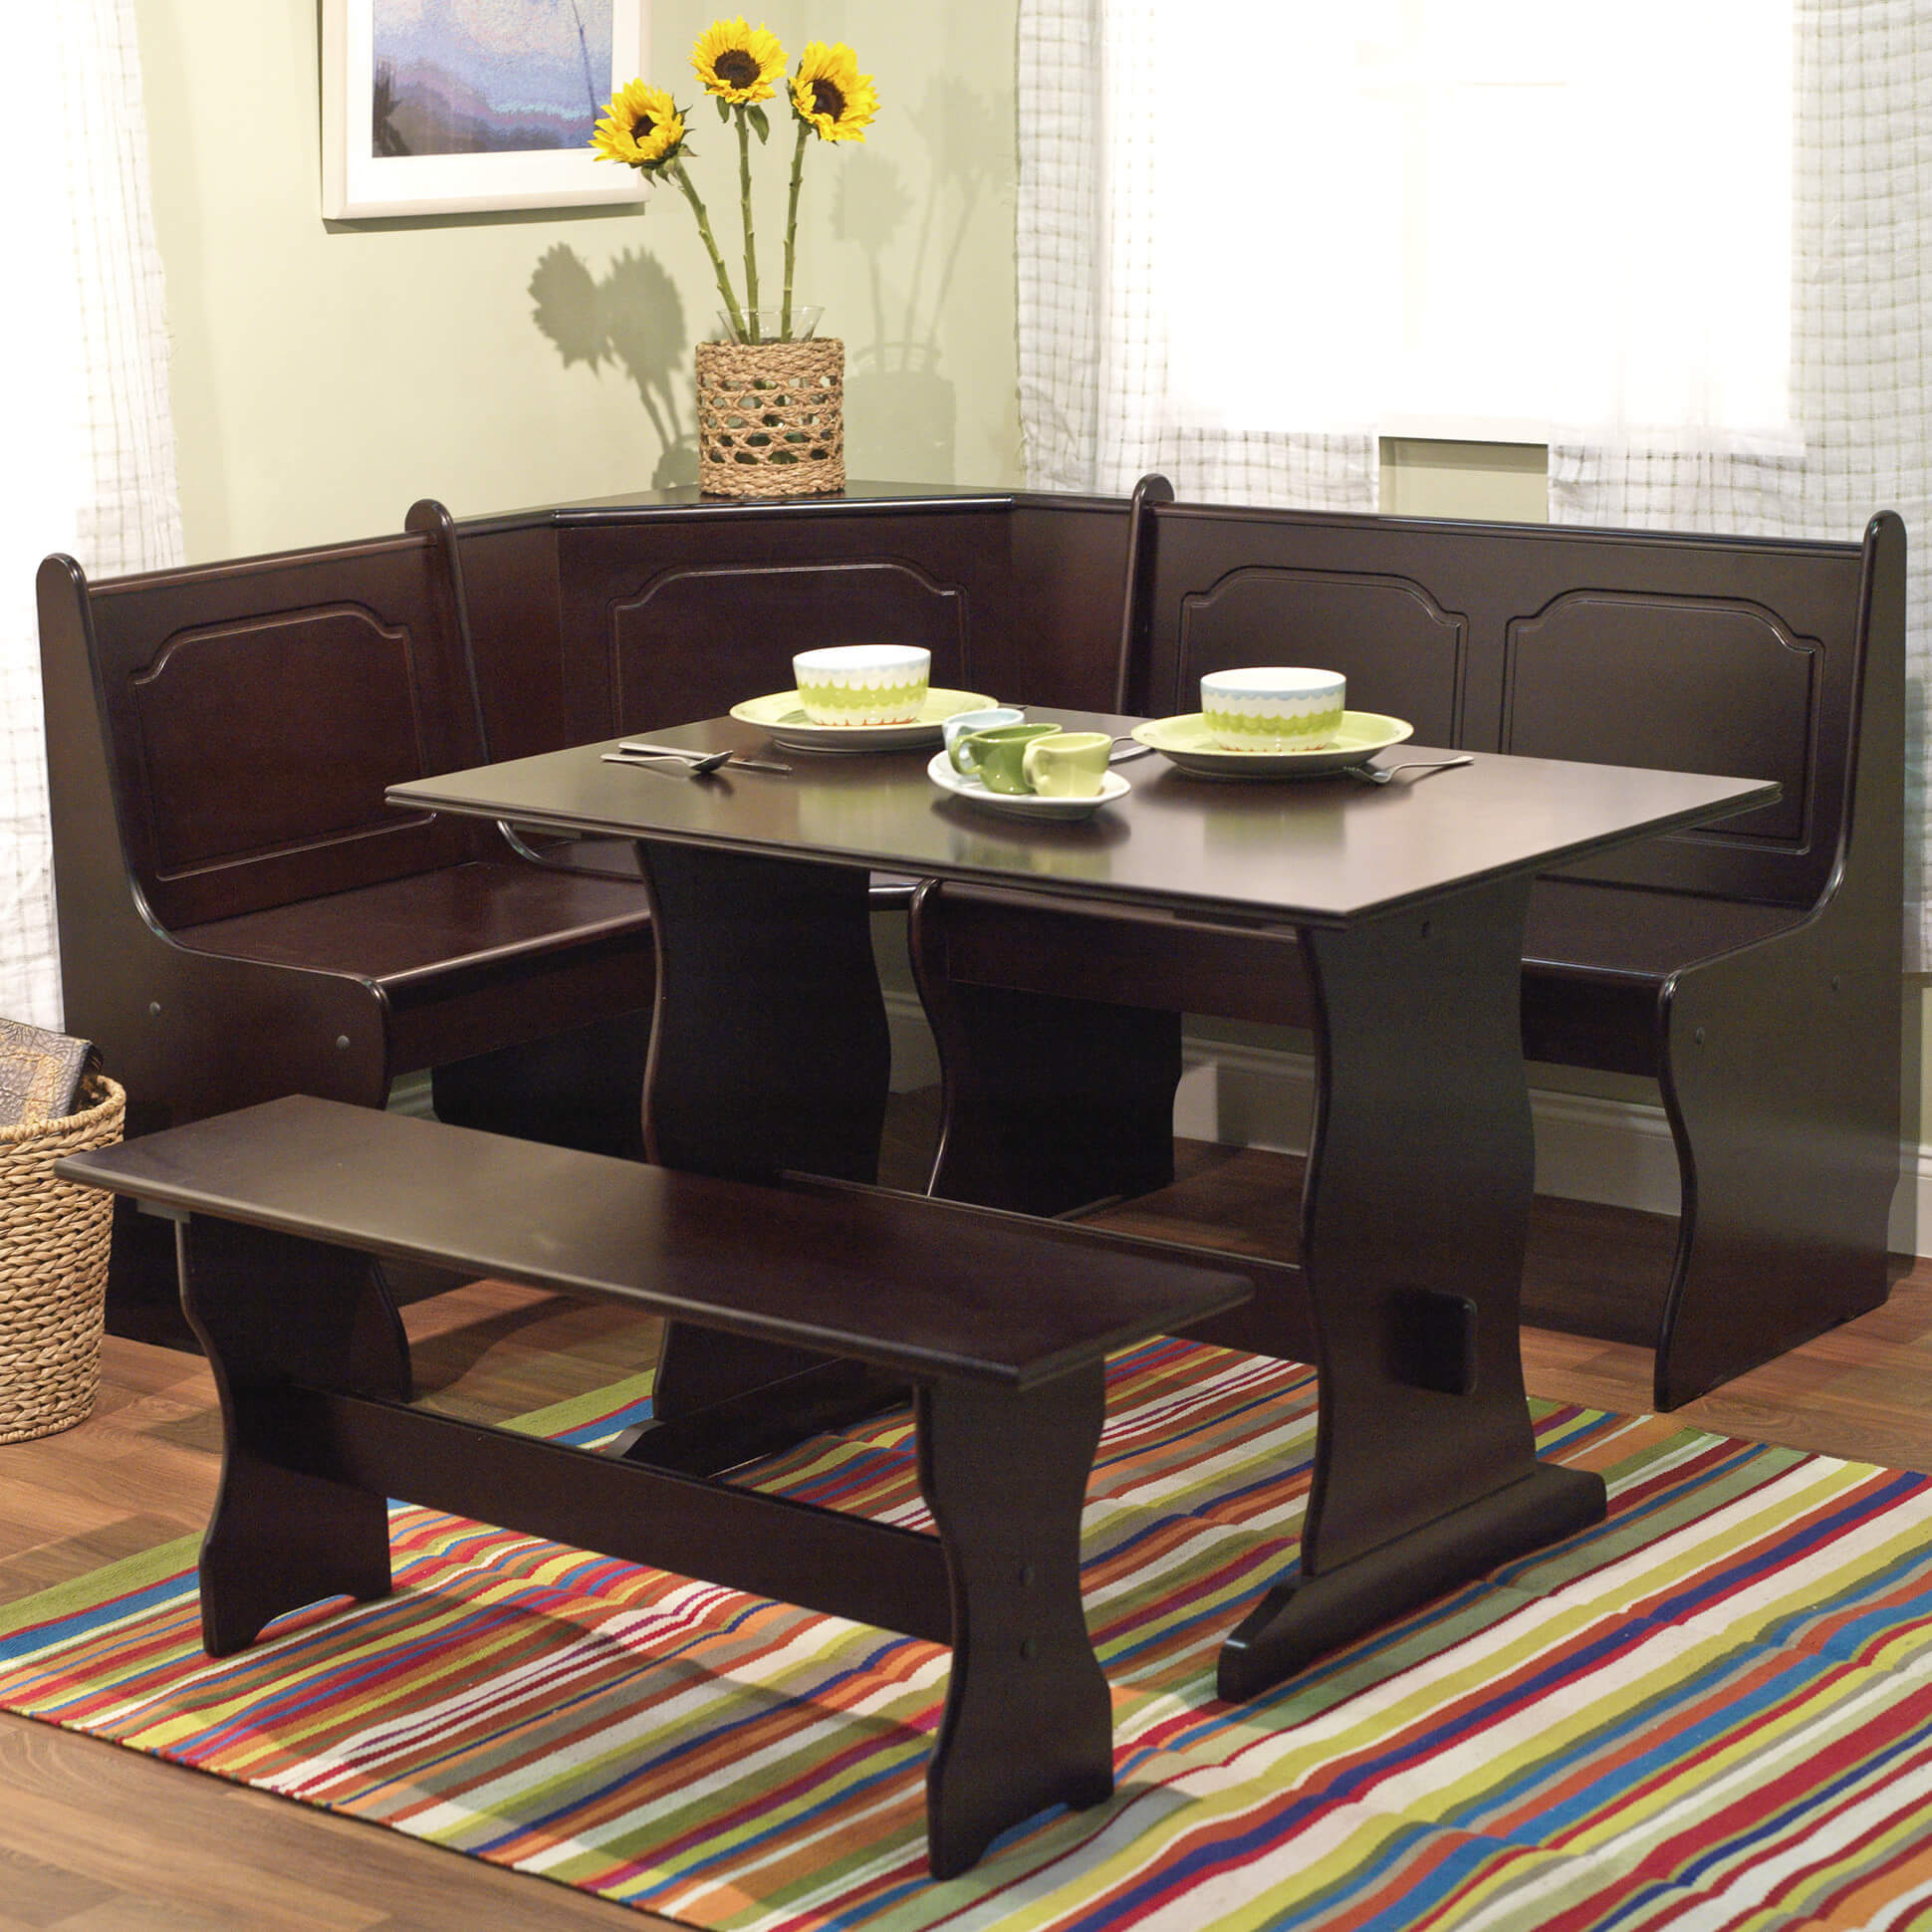 breakfast nook furniture sets kitchen table chairs 2 TMS Breakfast Nook